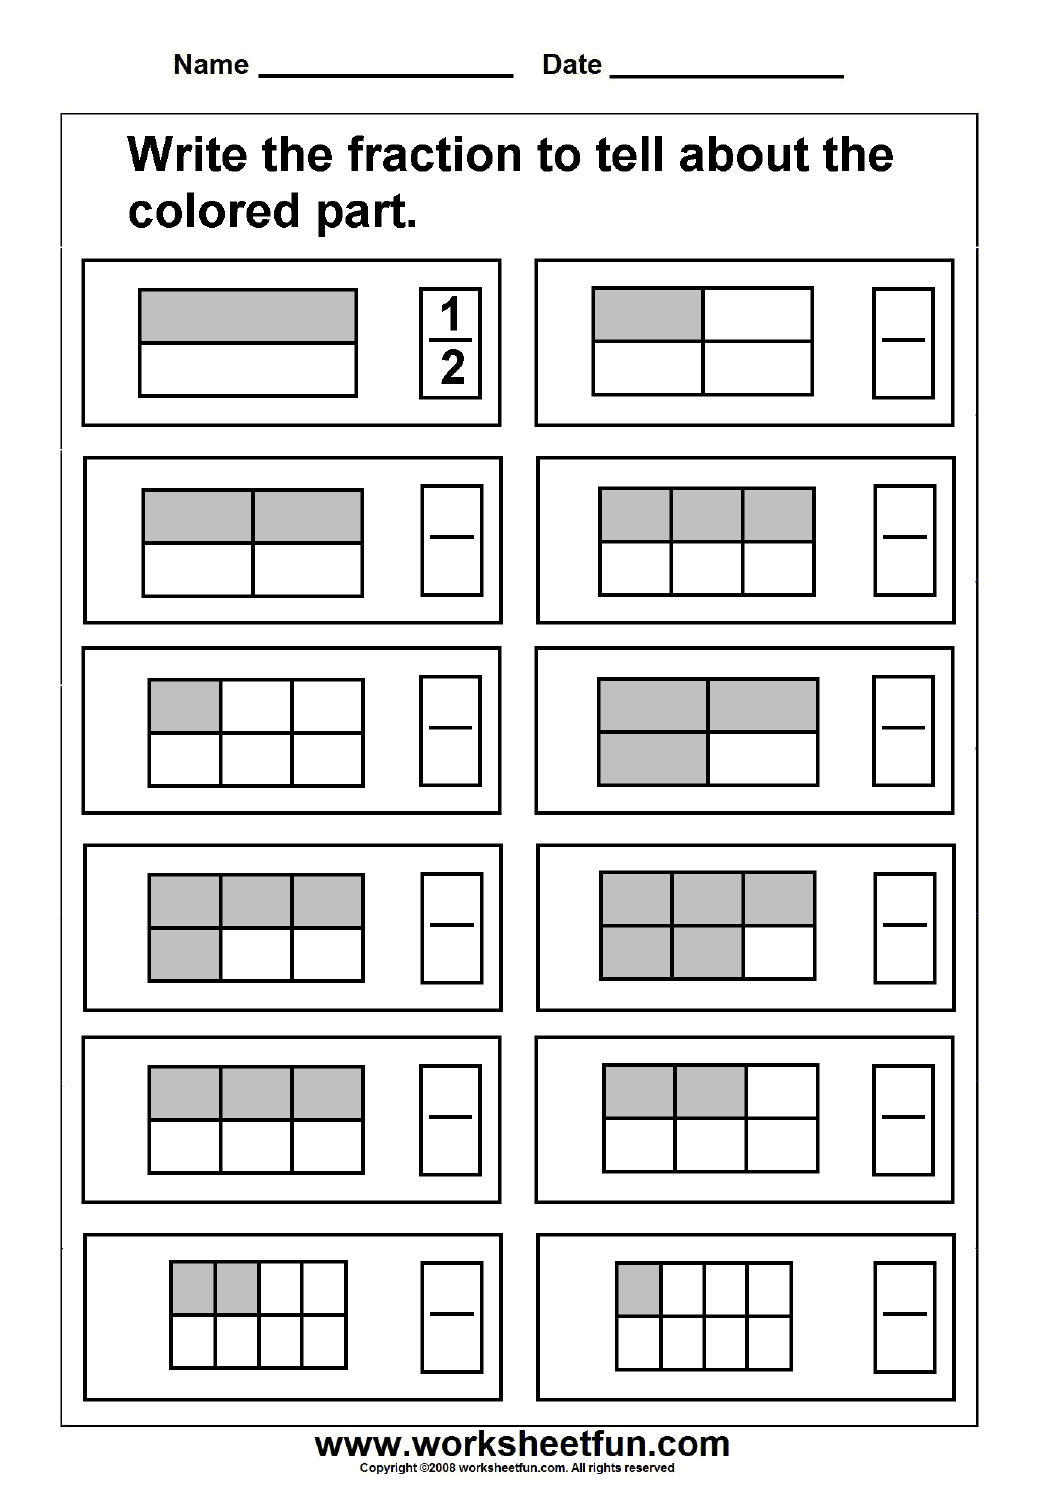 Fraction FREE Printable Worksheets Worksheetfun – Fun Fractions Worksheets